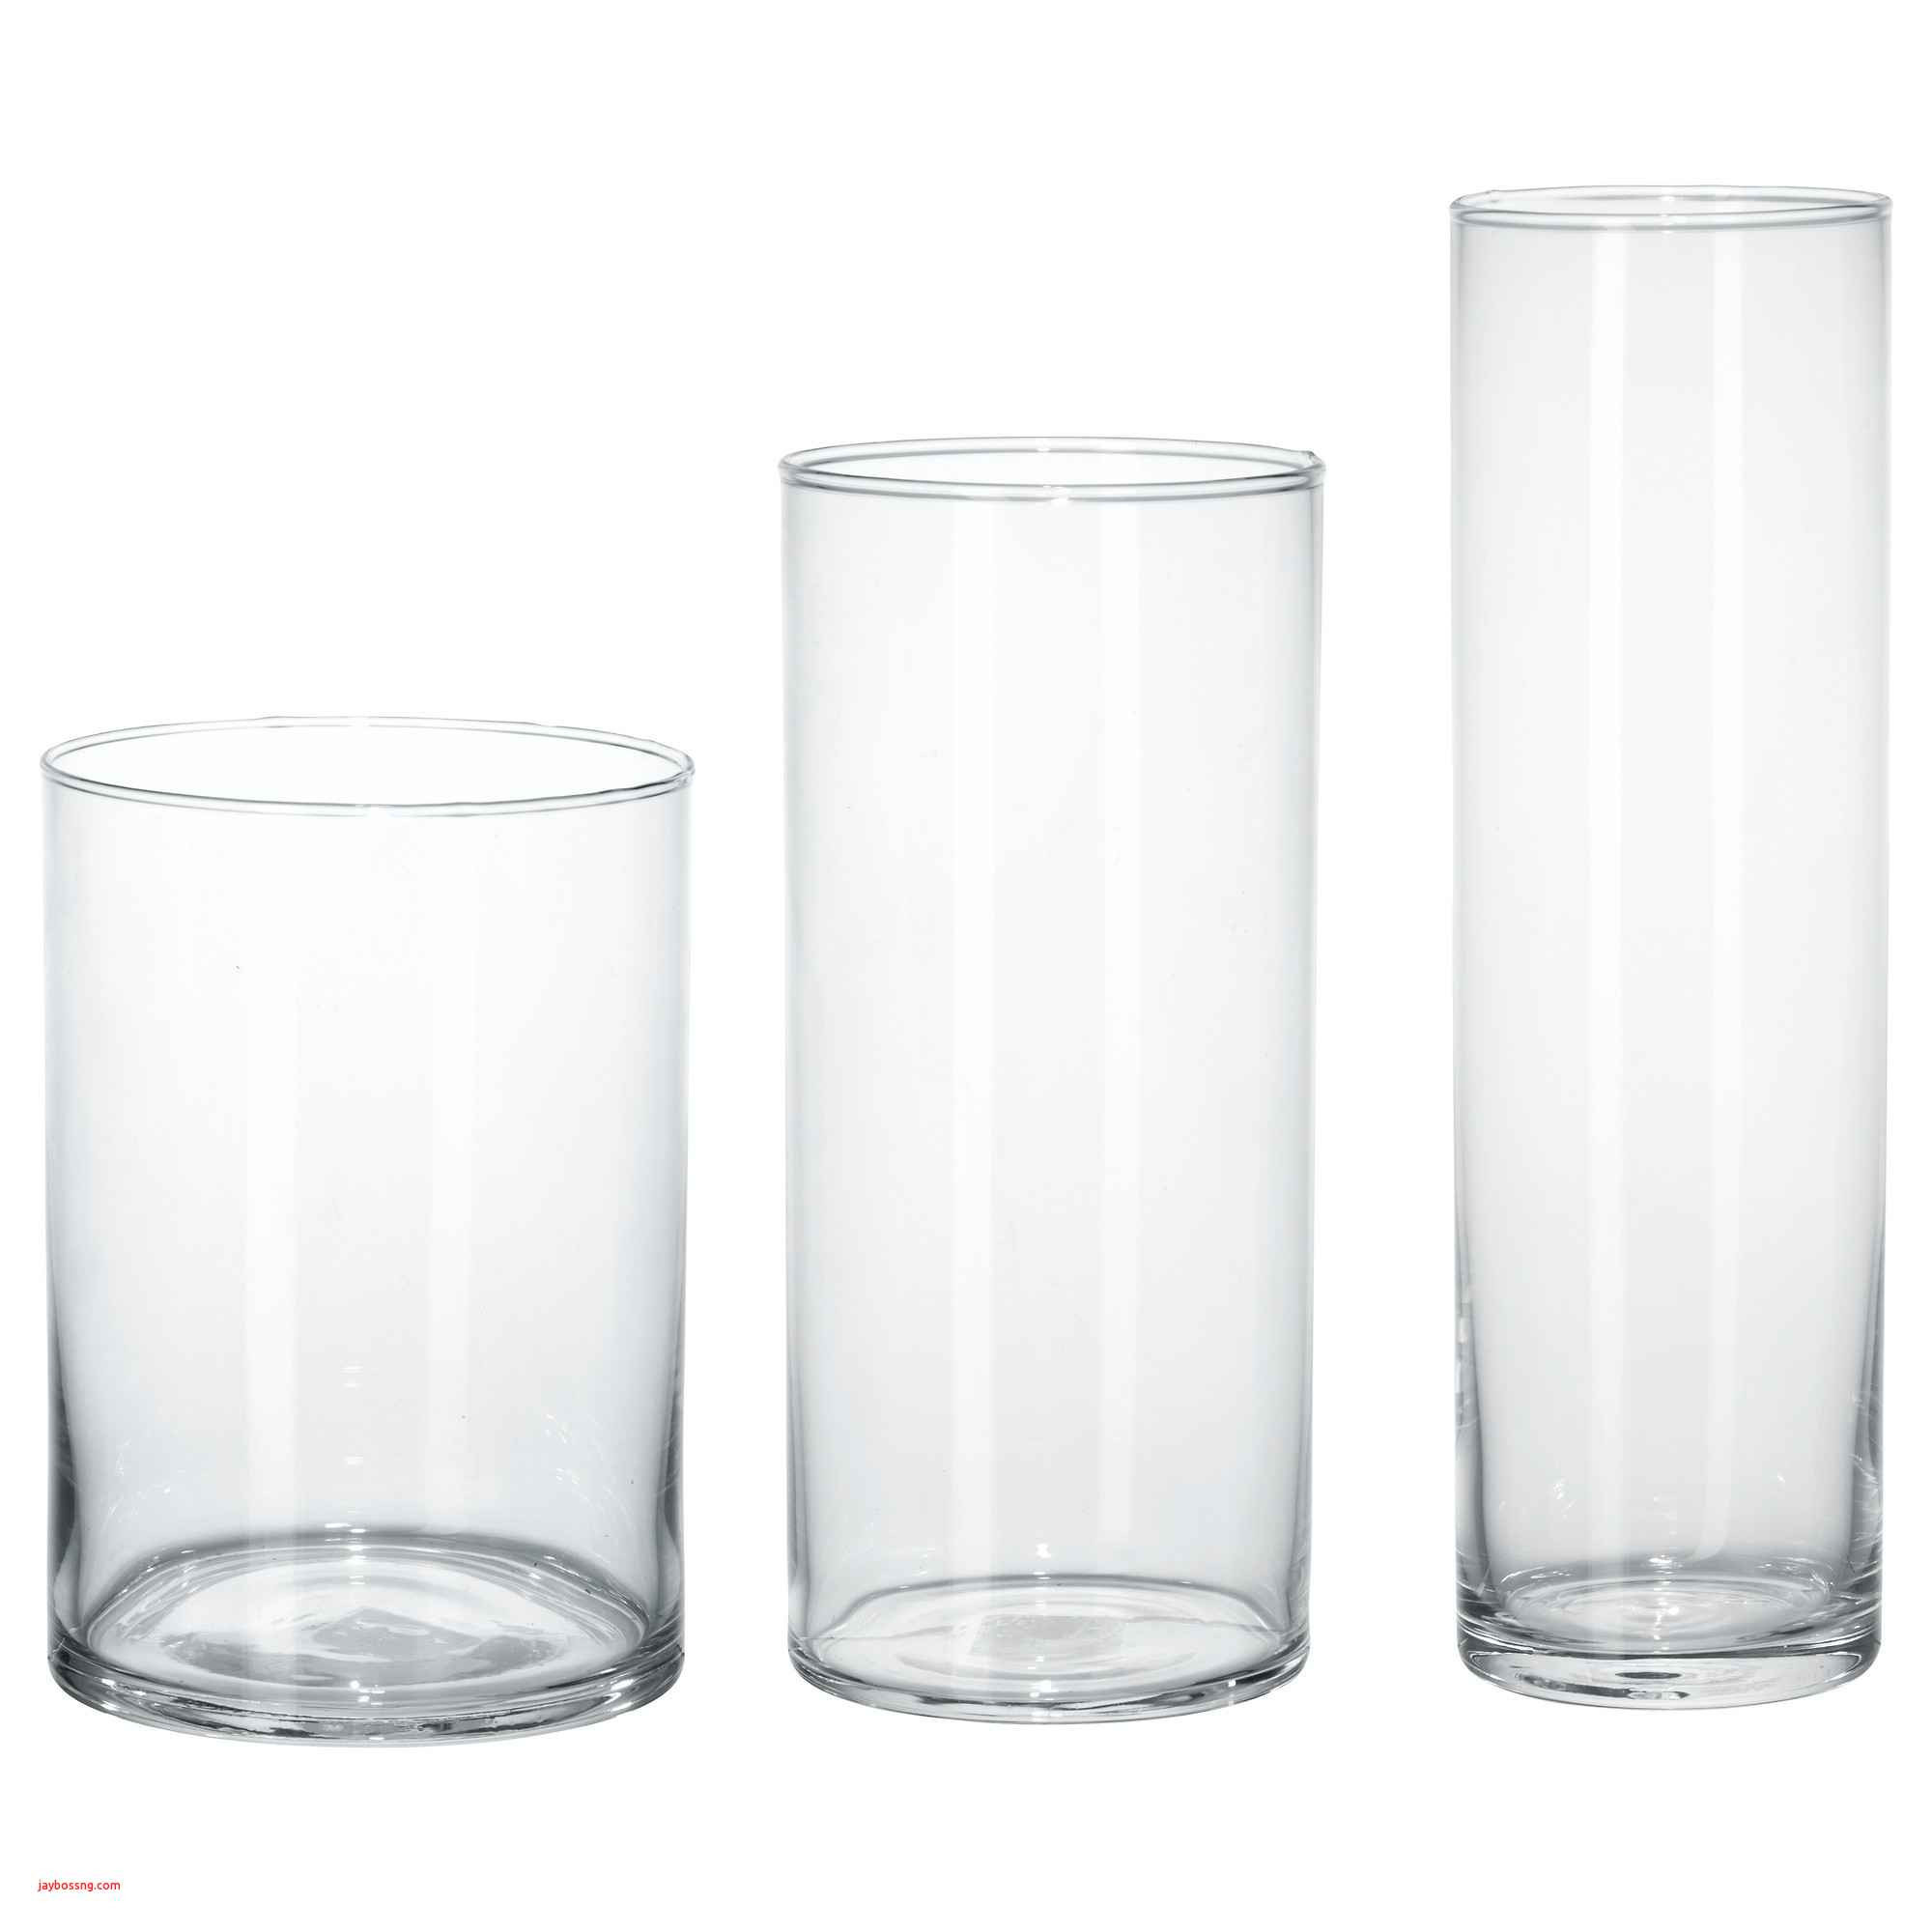 pearl vase fillers of white vase filler photos ikea white table created pe s5h vases ikea with regard to white vase filler photos ikea white table created pe s5h vases ikea vase i 0d bladet